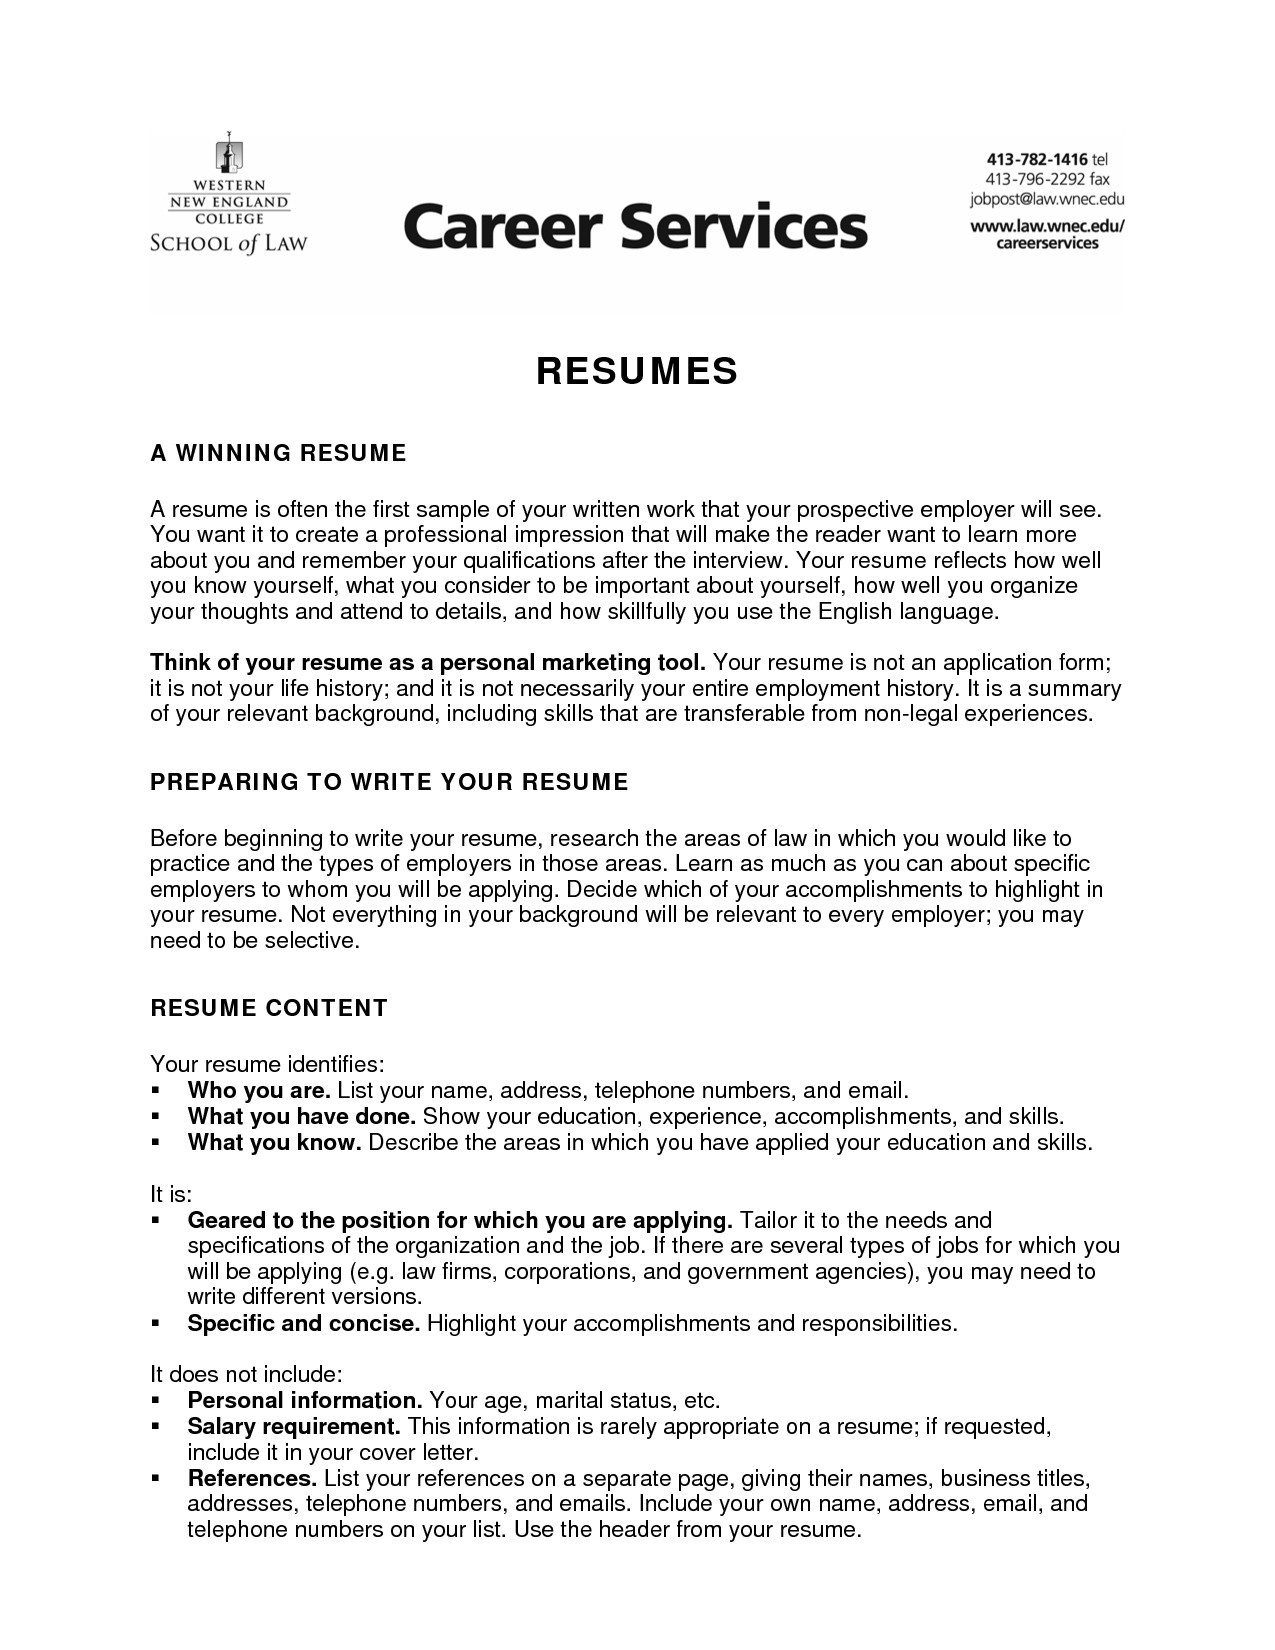 What to Include In Your Resume - Nursing Resume Objective Examples Best Elegant Good Nursing